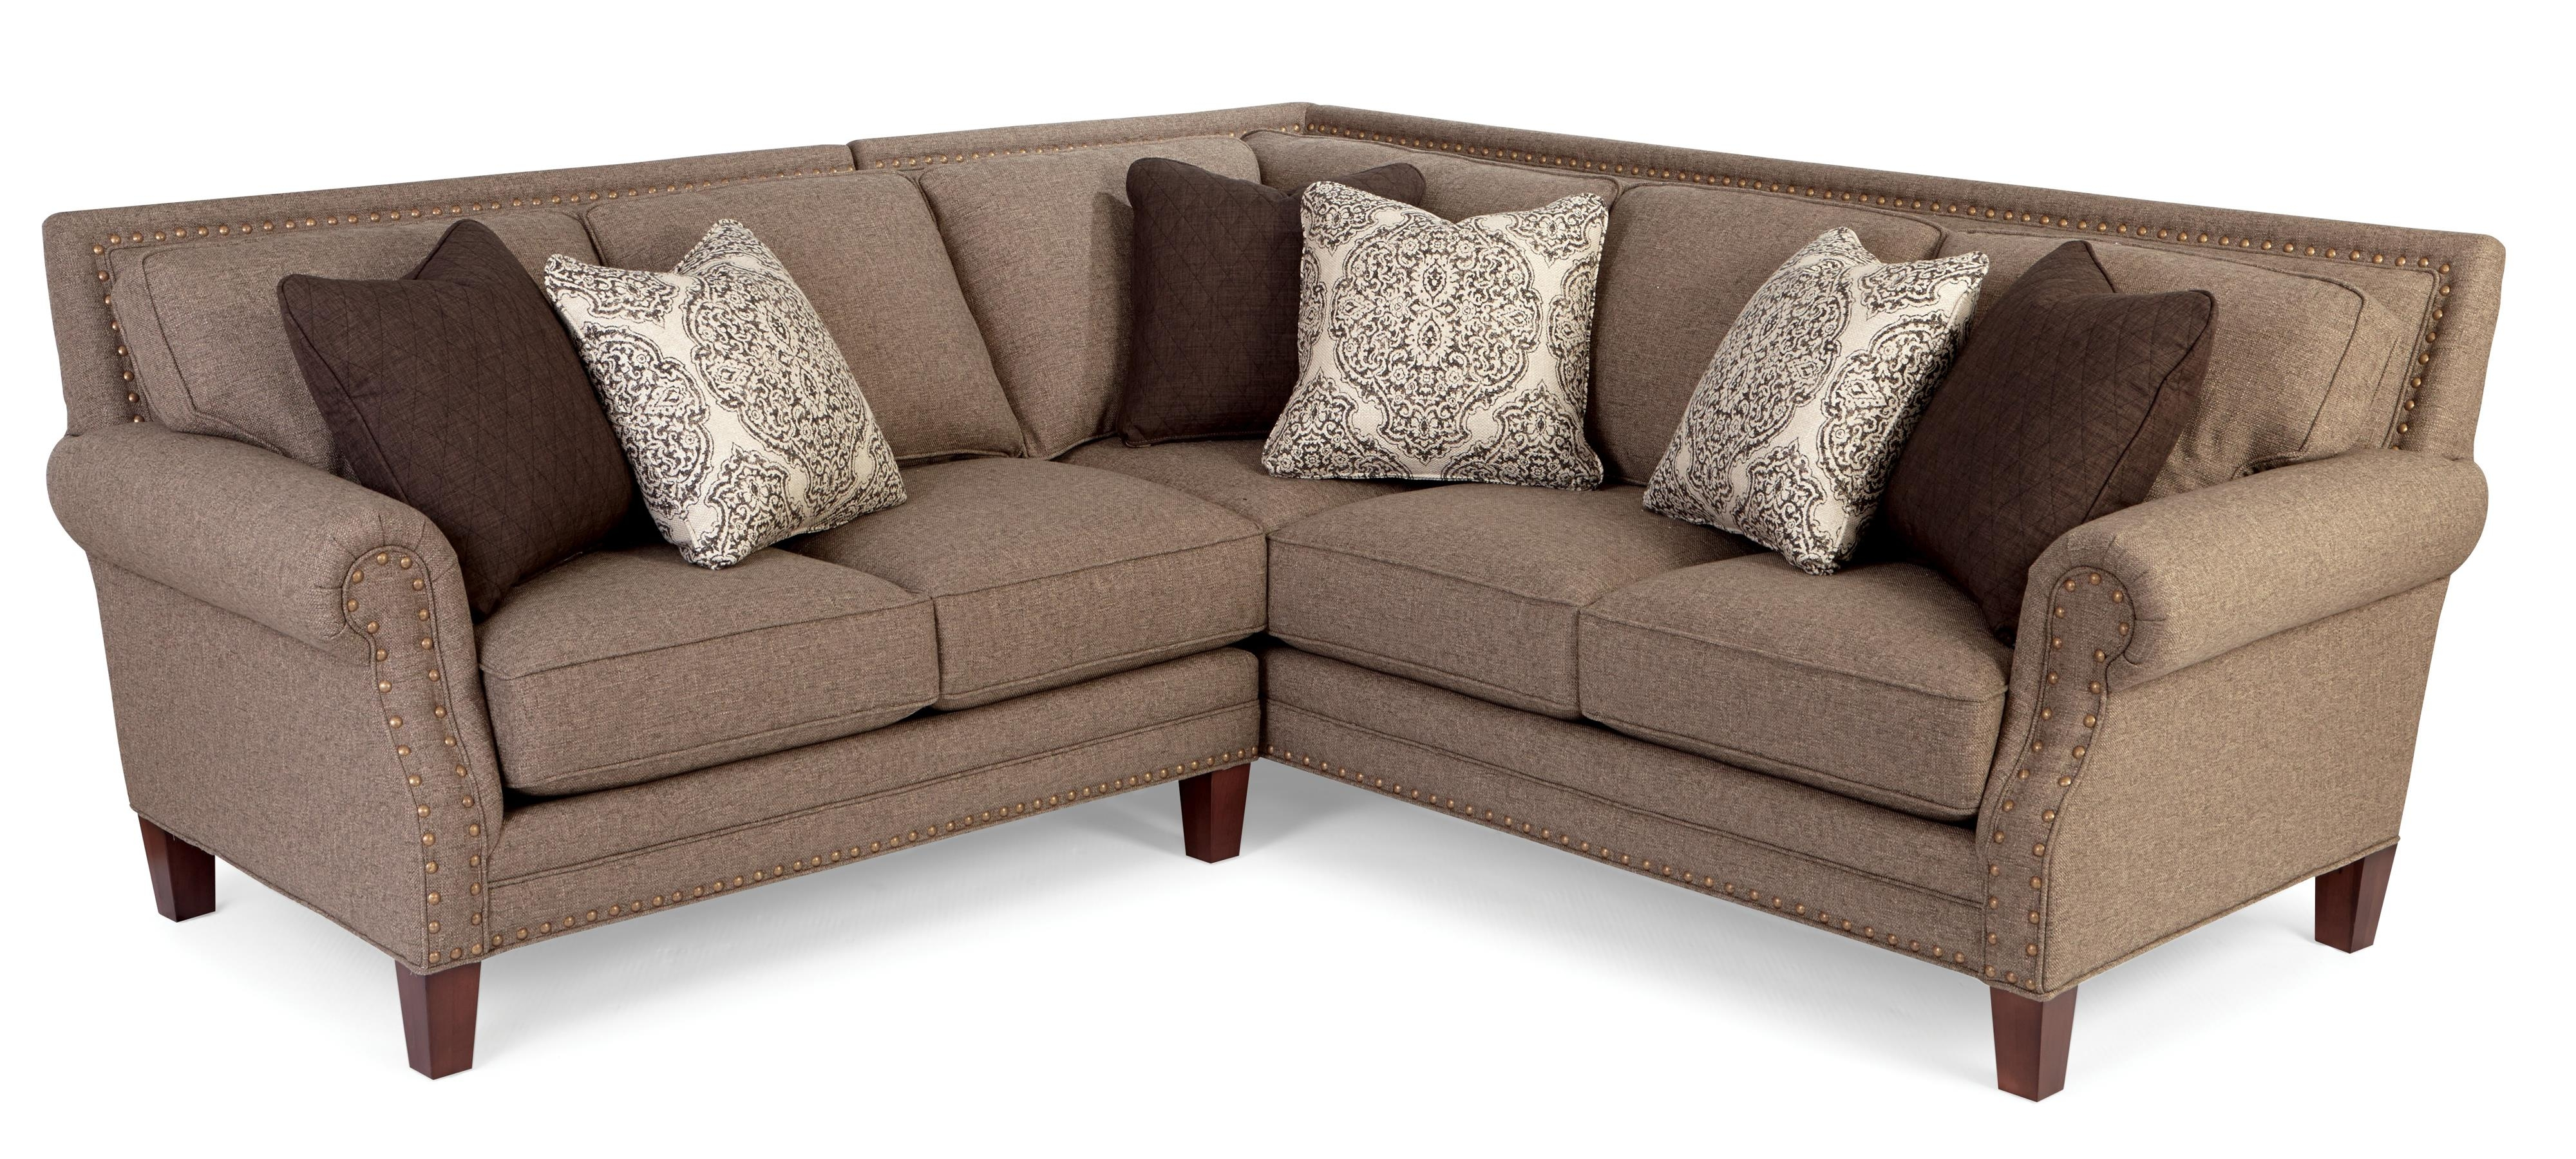 Two Piece Sectional Sofa With Rolled Arms And Light Brass With Craftmaster Sectional Sofa (Image 14 of 15)